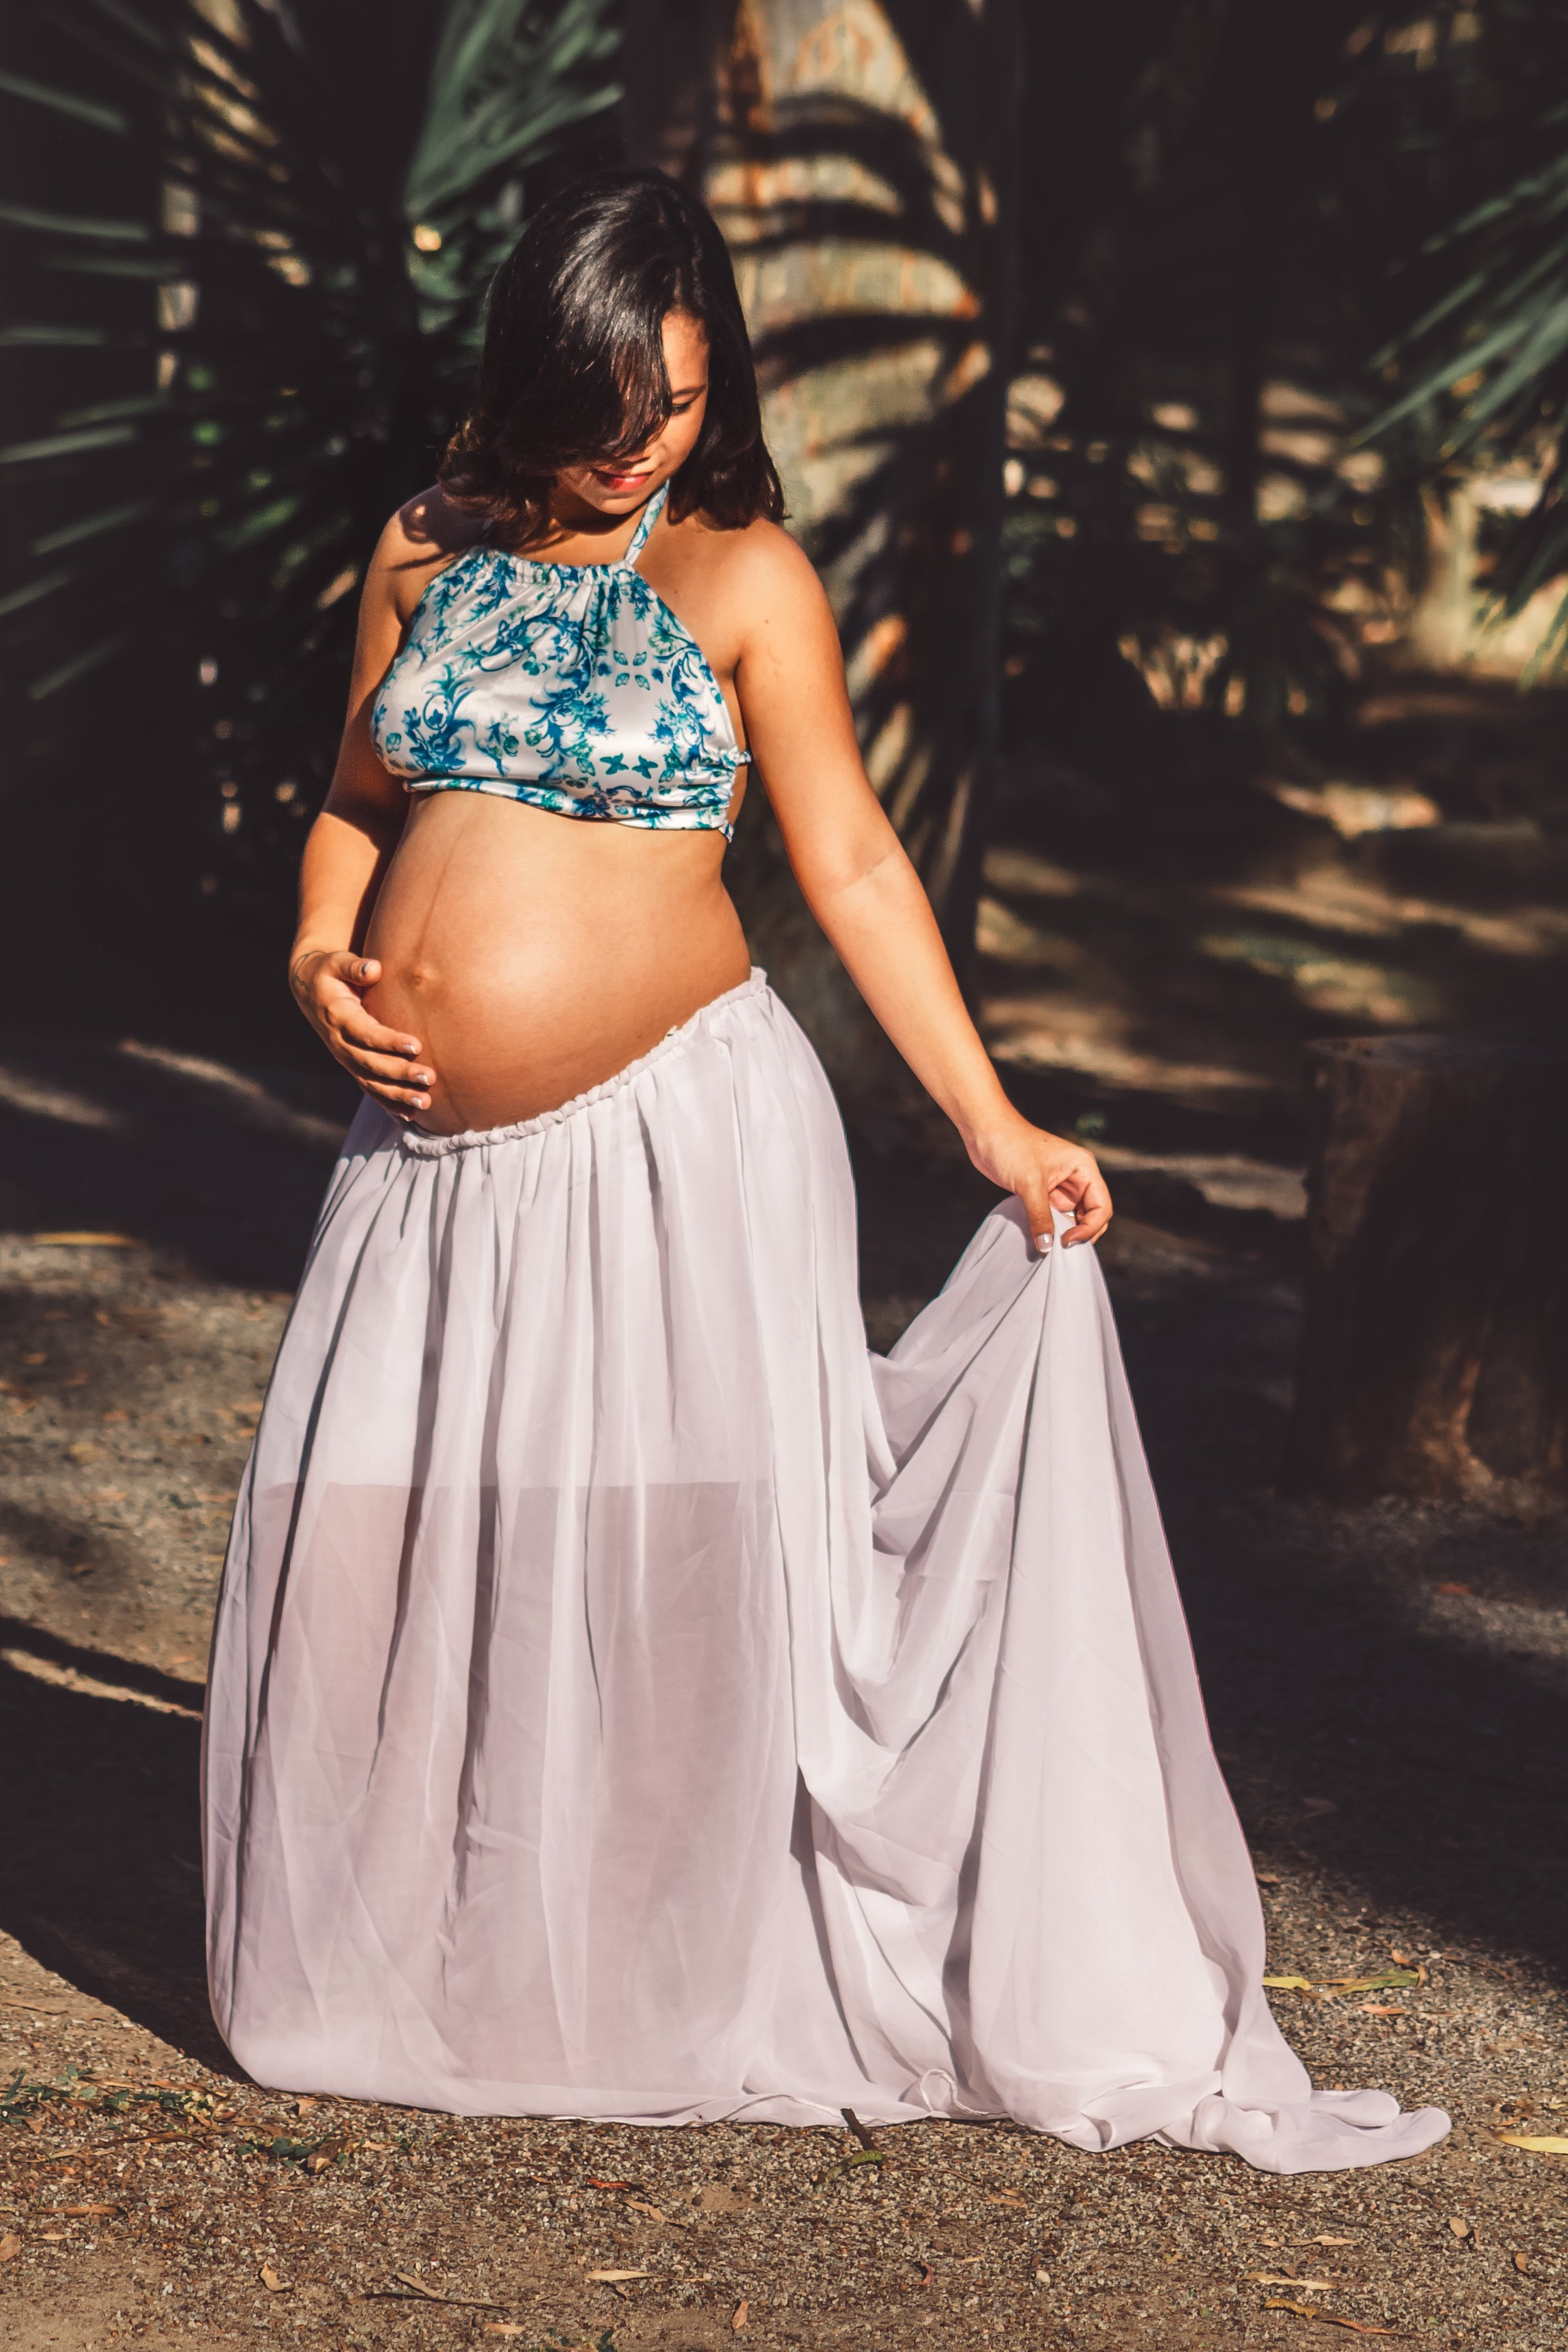 Image: a pregnant woman in a bra top and flowing skirt. Image credit: Pexels